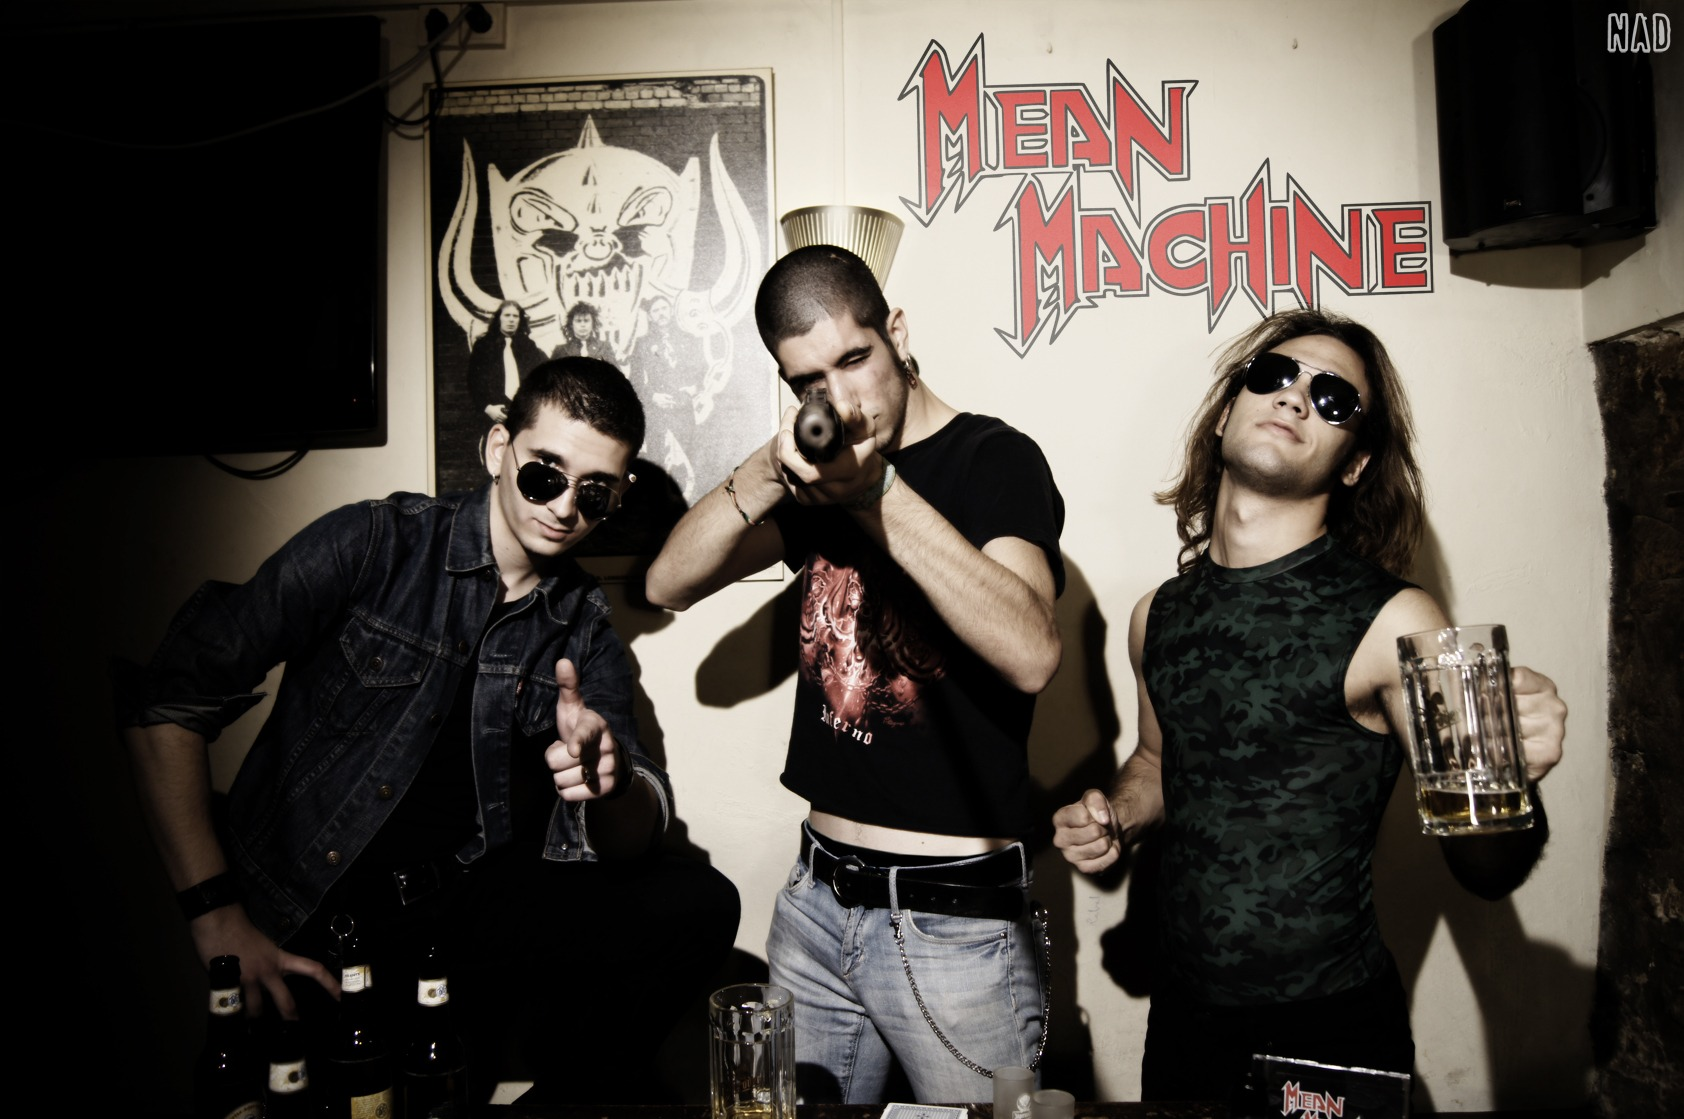 MEAN MACHINE – Entrevista – 18/07/12